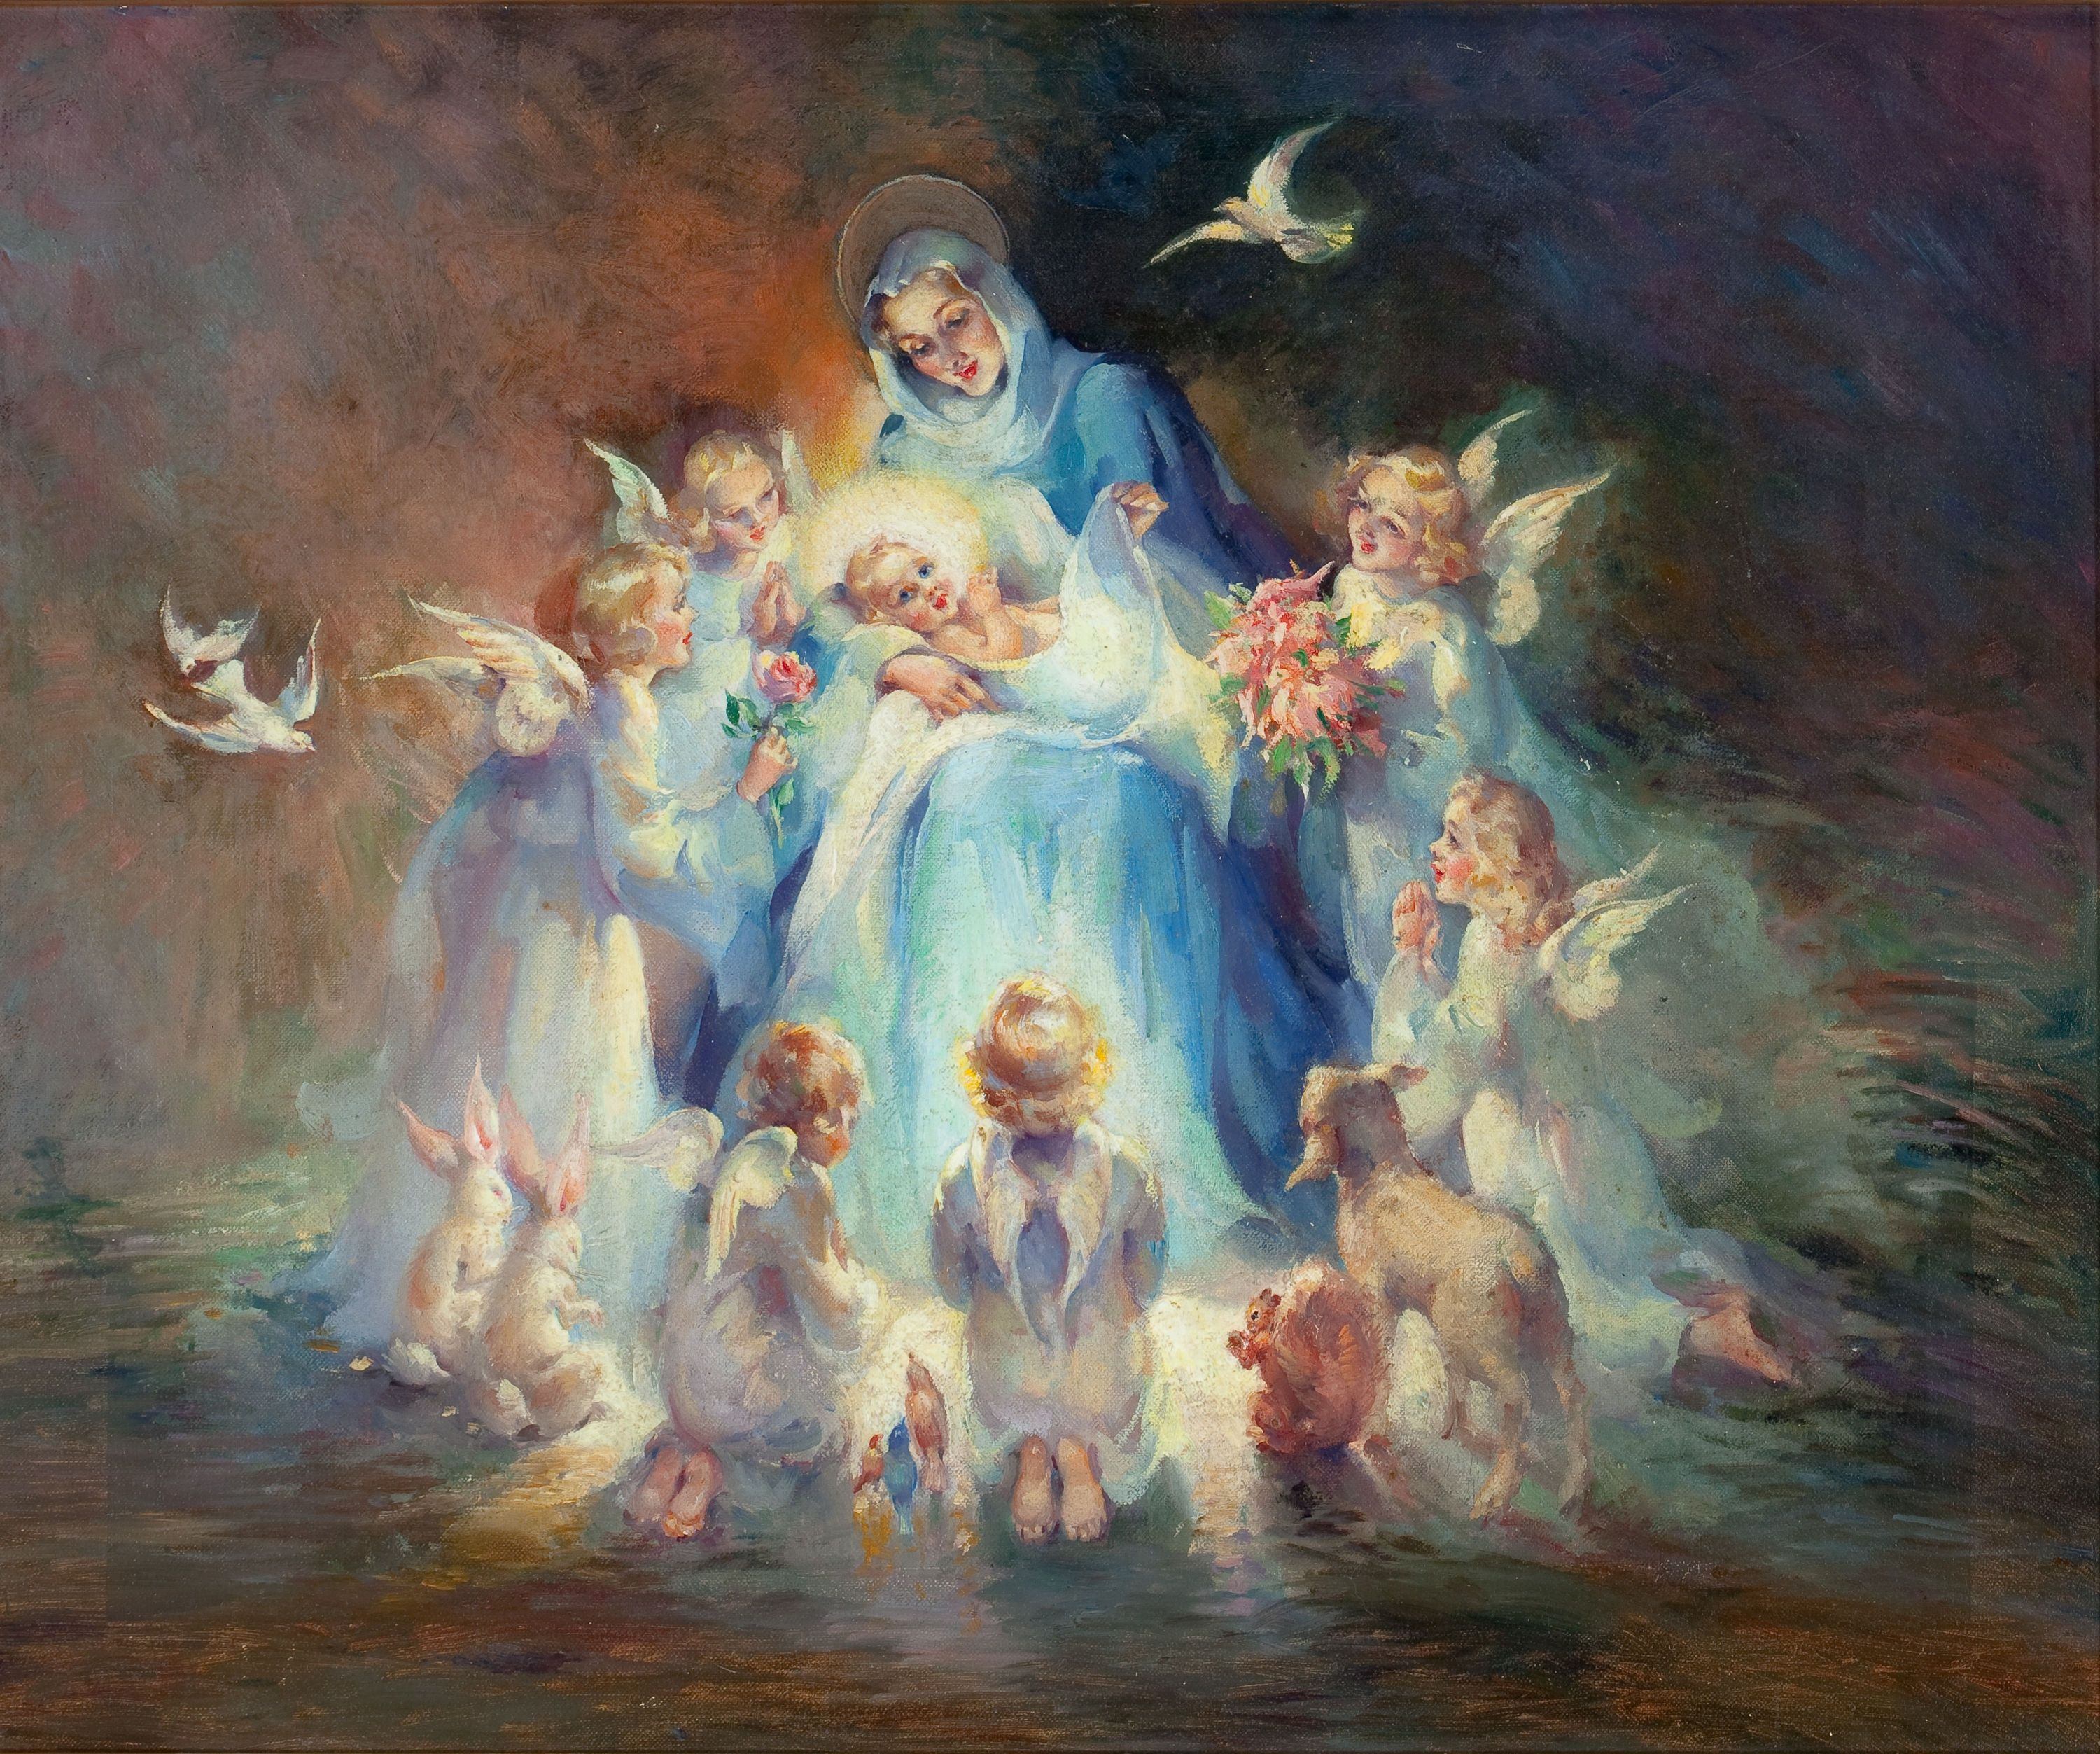 the virgin birth of jesus The birth narratives the two birth narratives in the gospels, although they overlap in few particulars and obviously come from different sources, agree that jesus was conceived in the womb of a virgin by miraculous means, without the aid of a man.